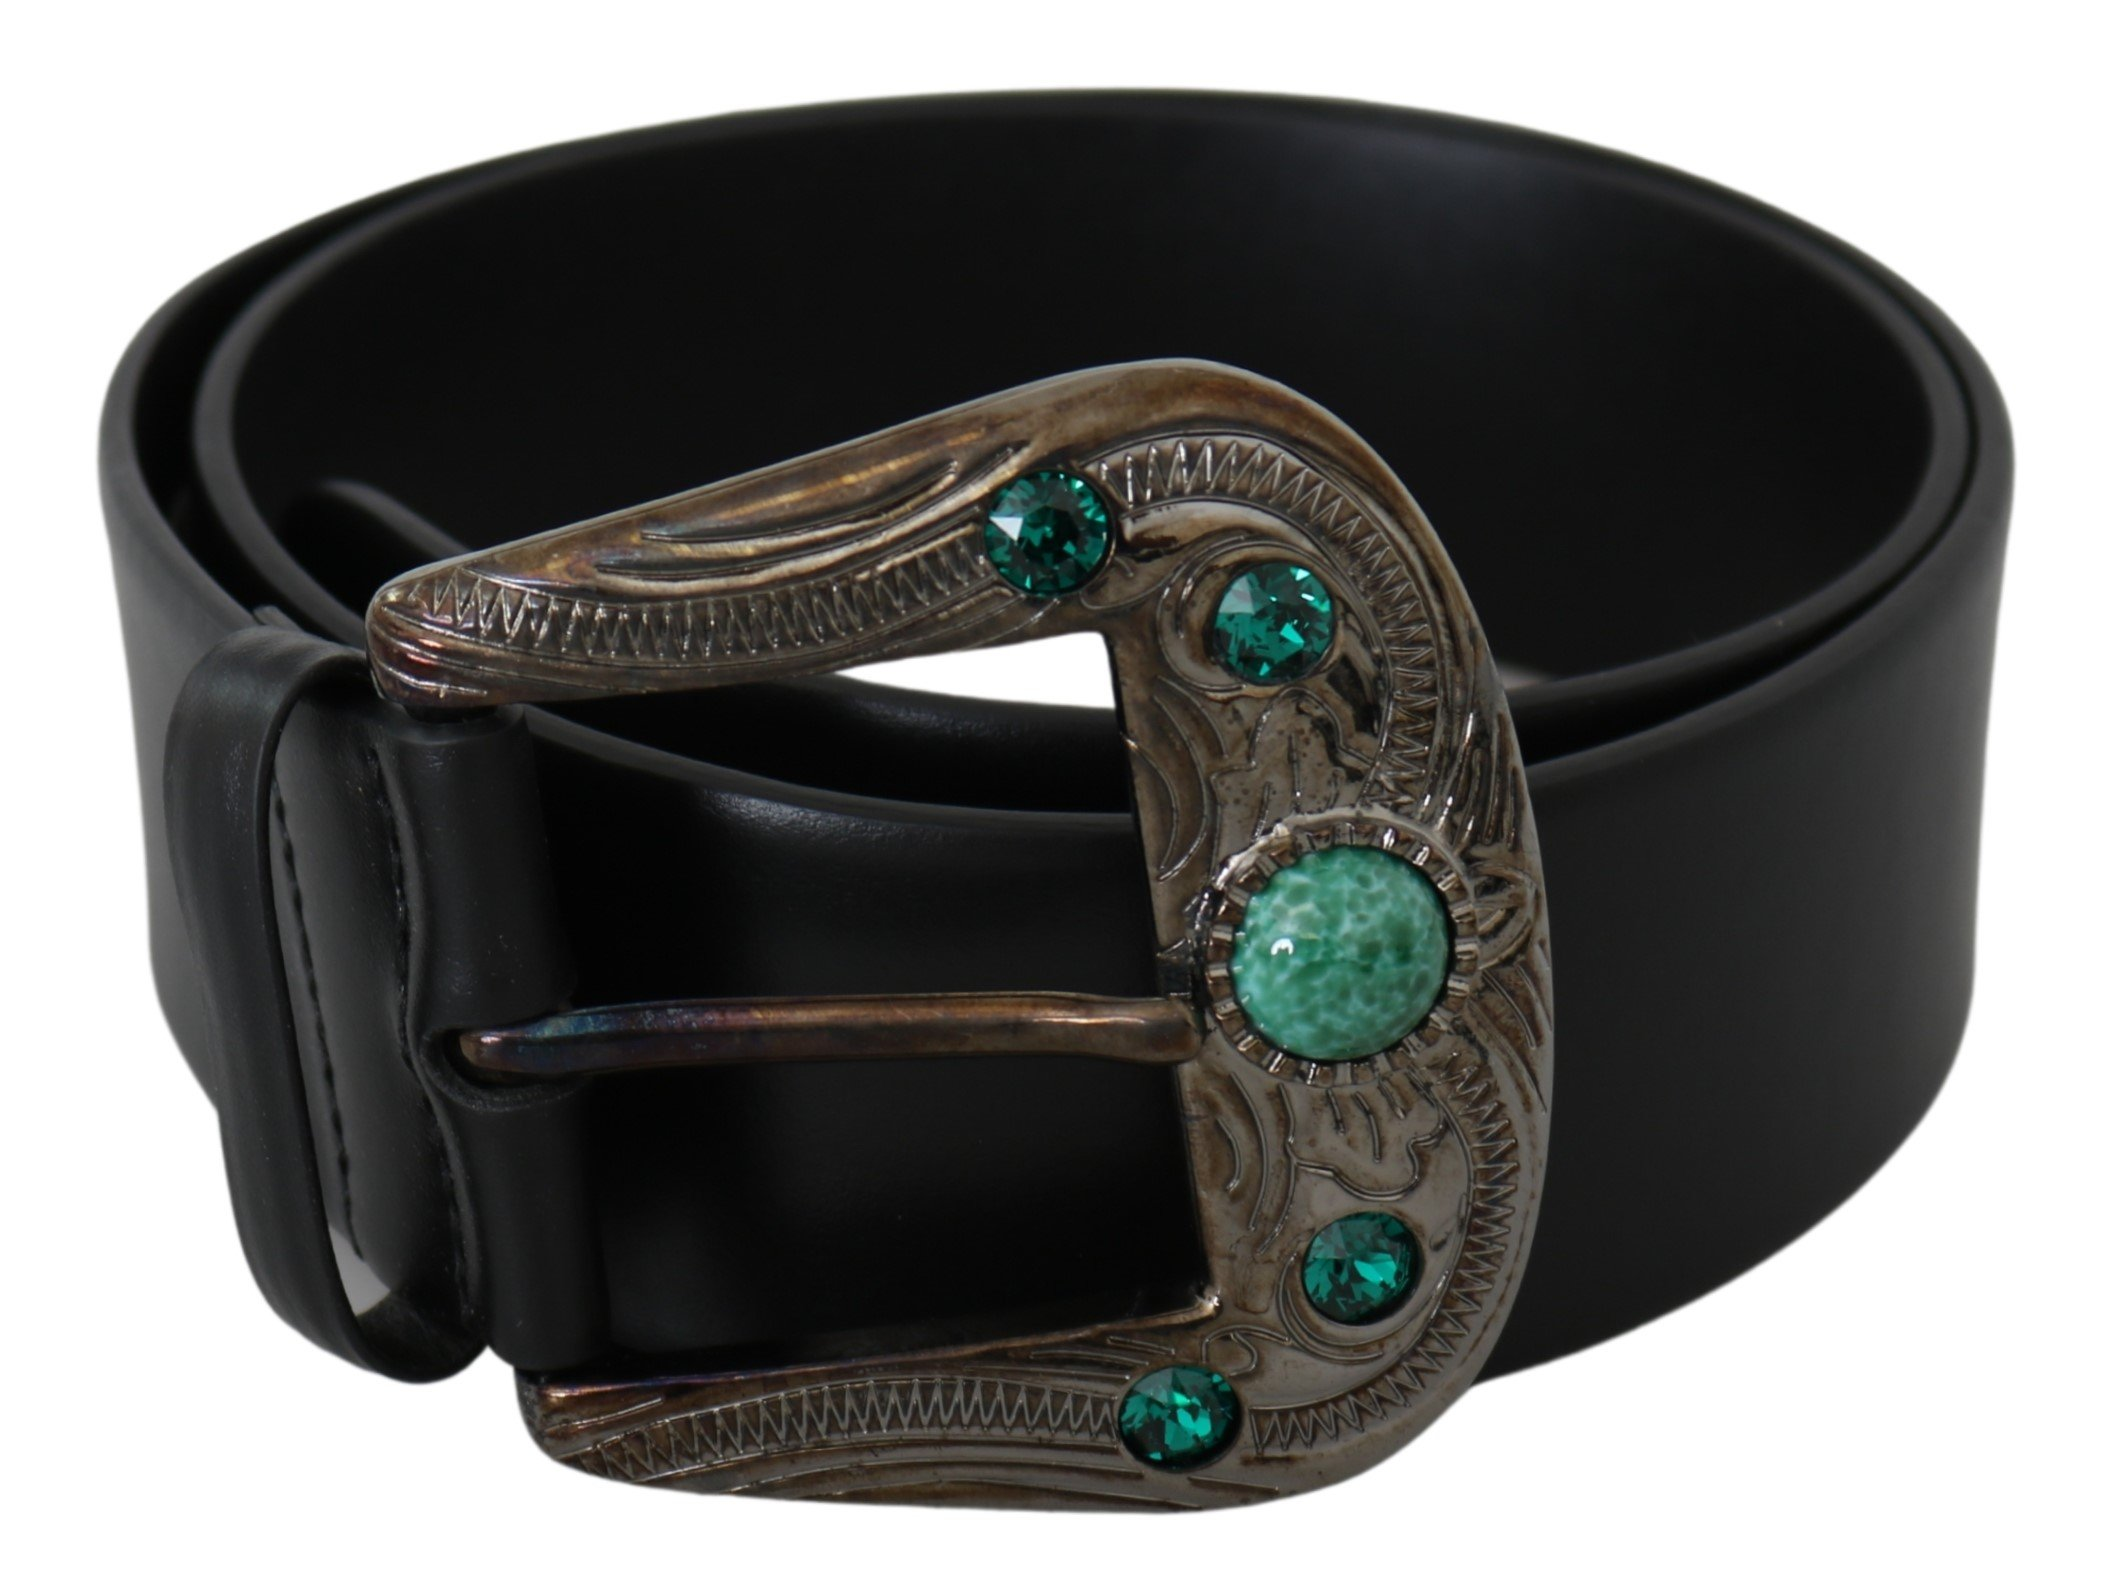 Black Leather Green Crystal Baroque Buckle Belt - 90 cm / 36 Inches